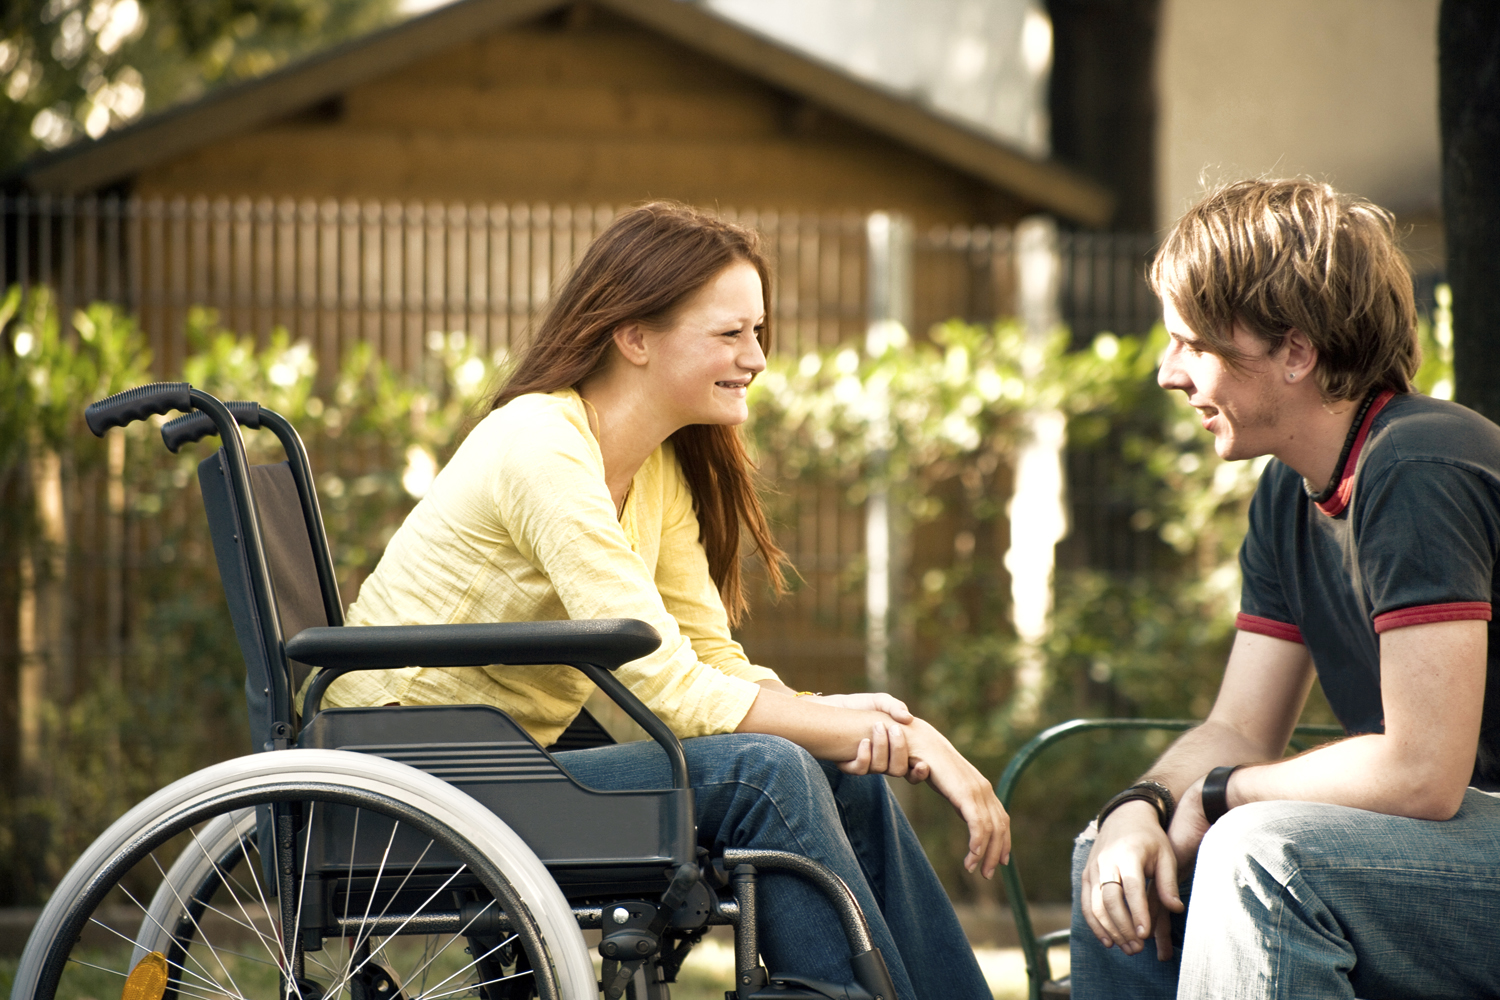 wheelchair etiquette 10 tips for interactions with wheelchair users